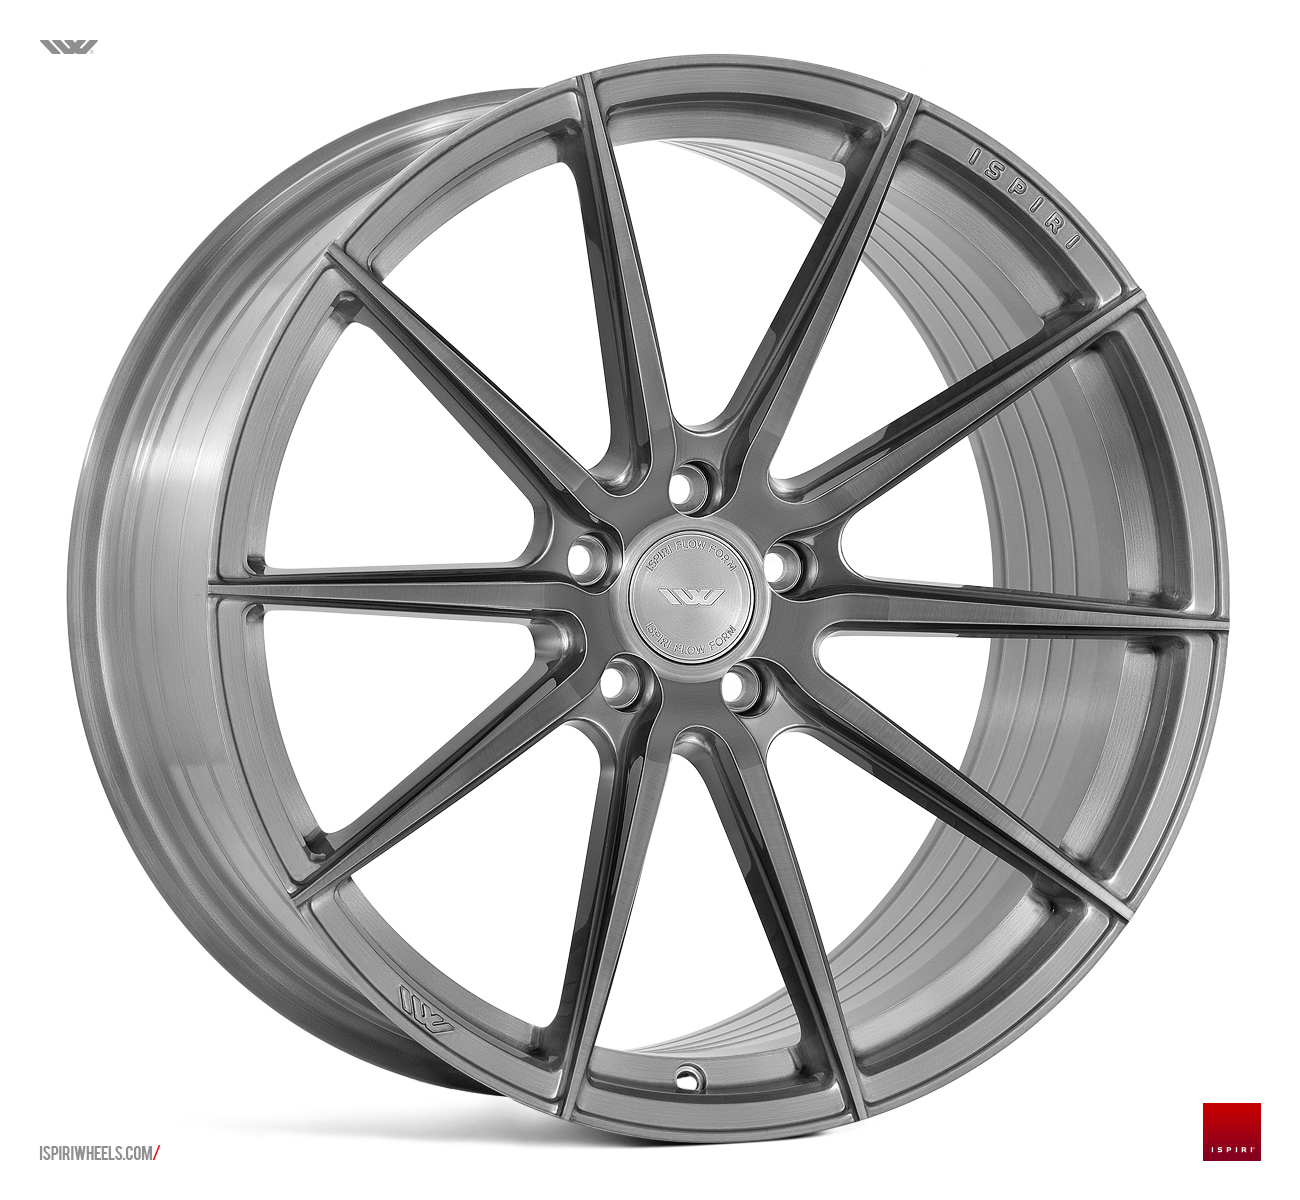 "NEW 20"" ISPIRI FFR1 MULTI-SPOKE ALLOYS IN BRUSHED CARBON TITANIUM, DEEPER CONCAVE 10.5"" REARS"